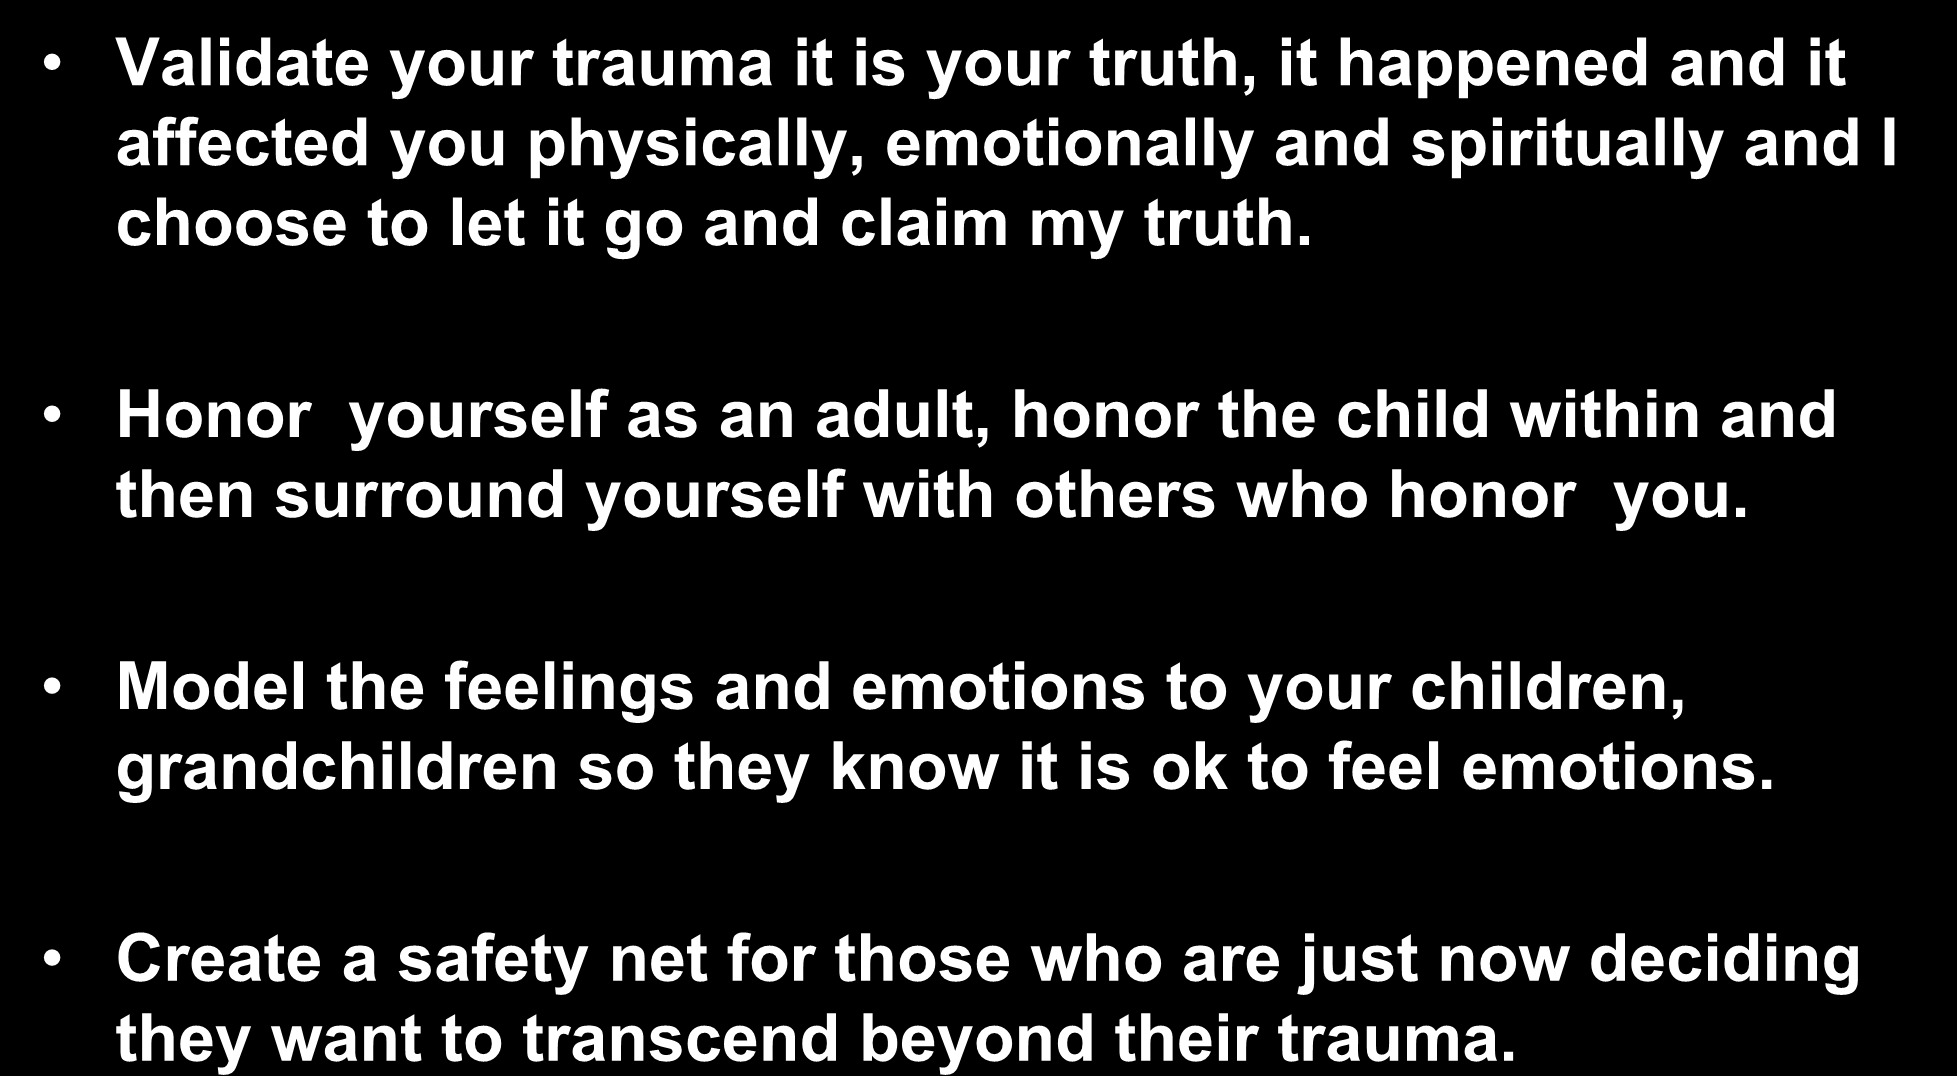 Steps to Resolution within ourselves: Validate your trauma it is your truth, it happened and it affected you physically, emotionally and spiritually and I choose to let it go and claim my truth.